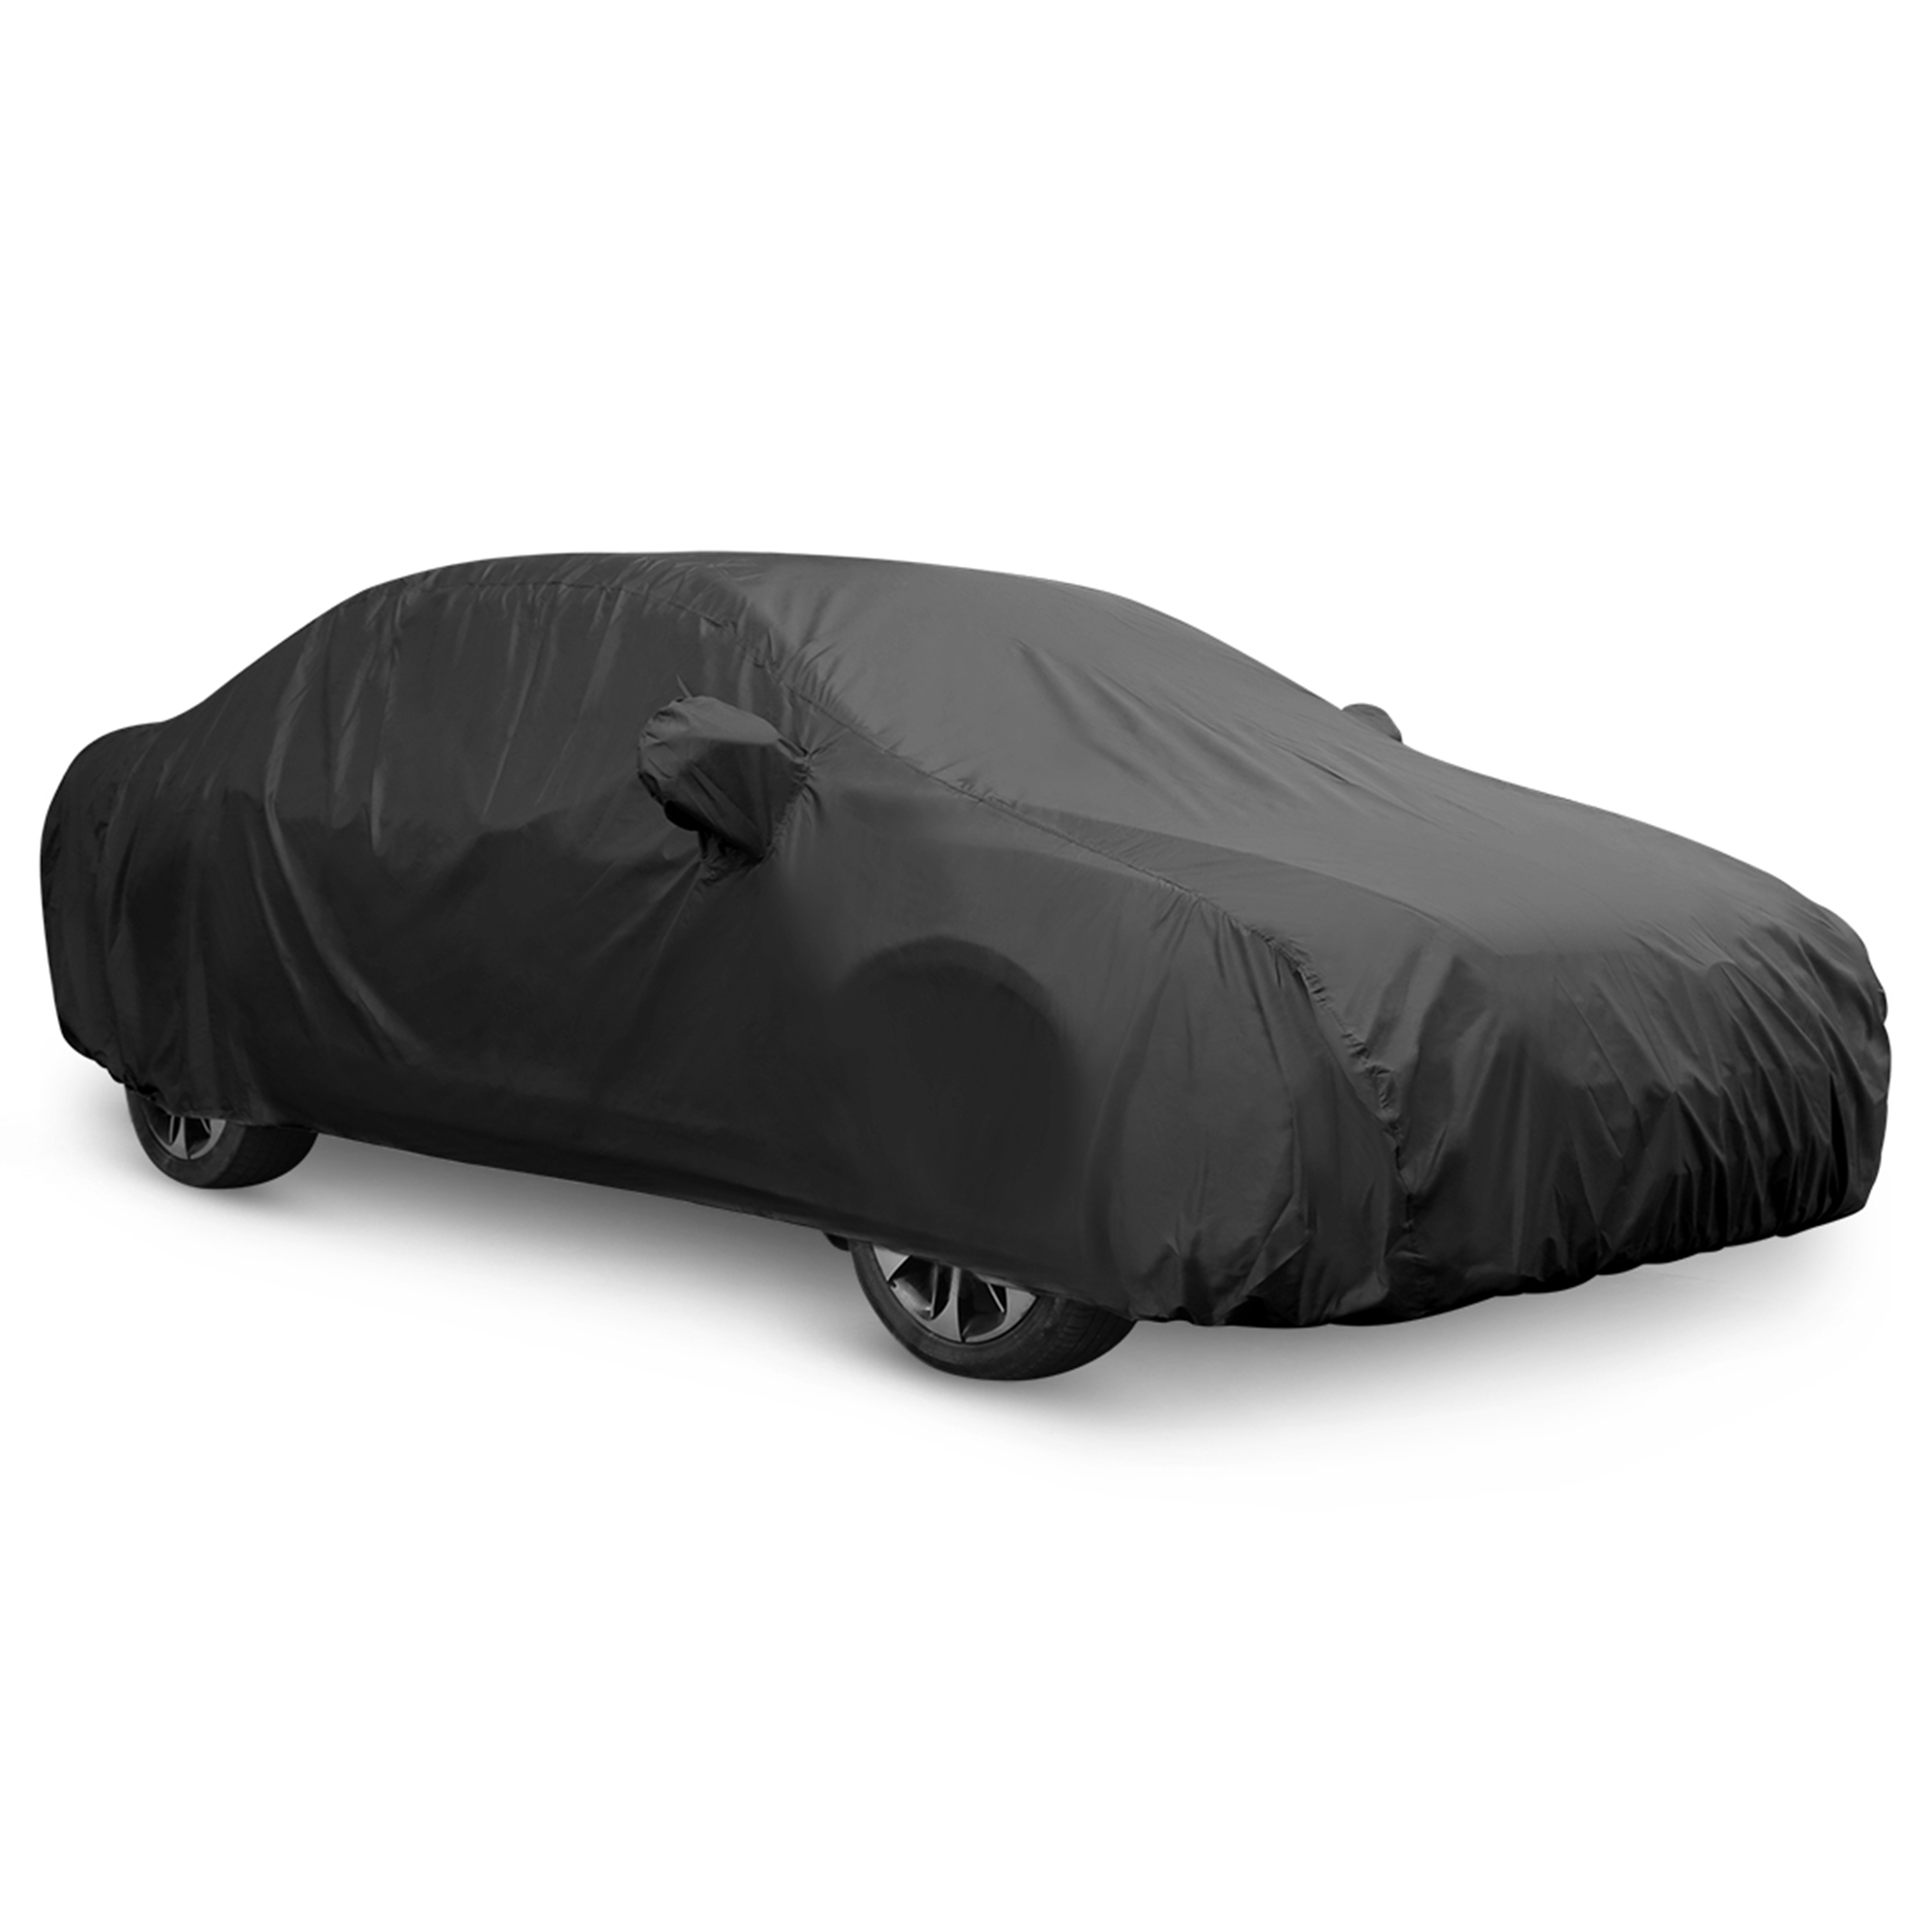 Black Breathable Waterproof Car Cover w Mirror Pocket 3XXL